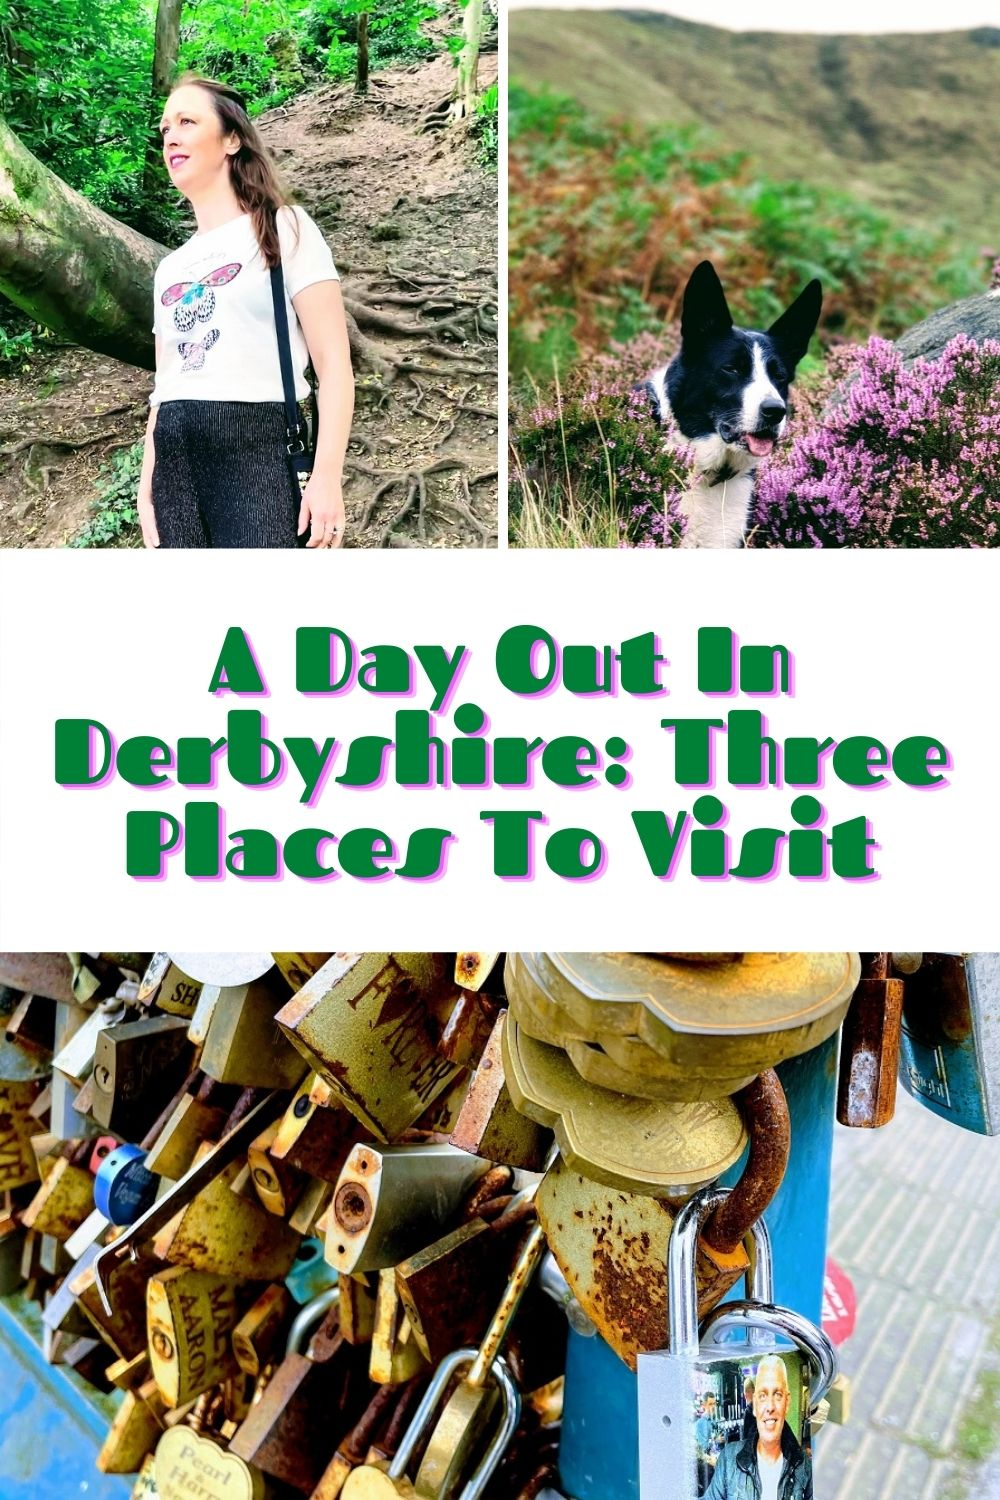 A Day Out In Derbyshire: Three Places To Visit